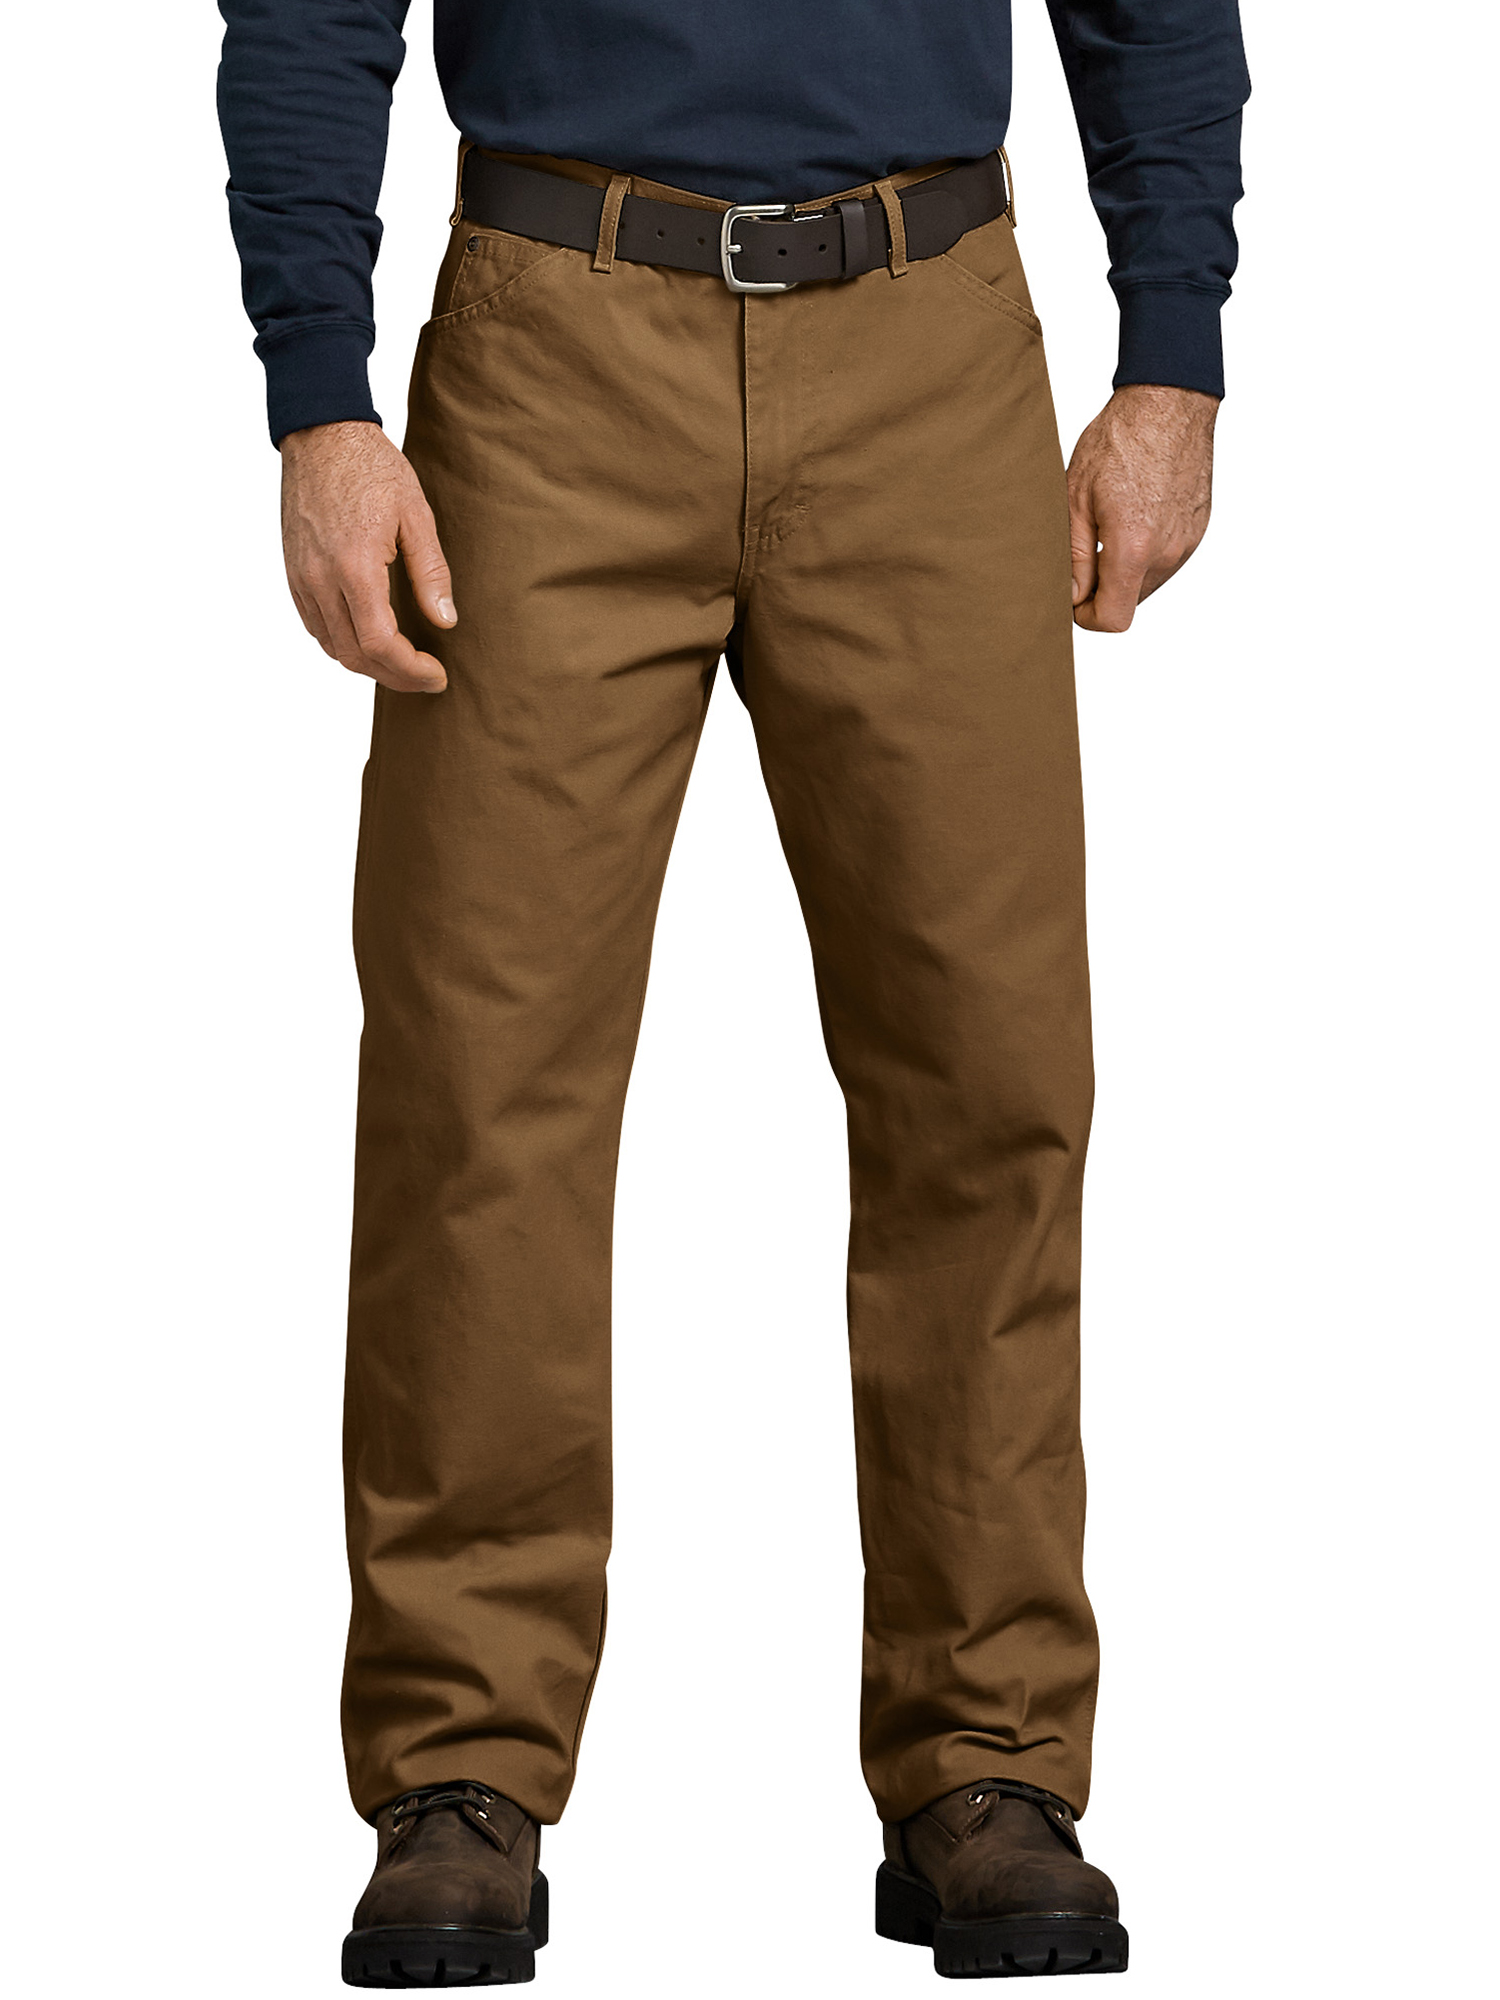 Men's Relaxed Fit Duck Carpenter Jean